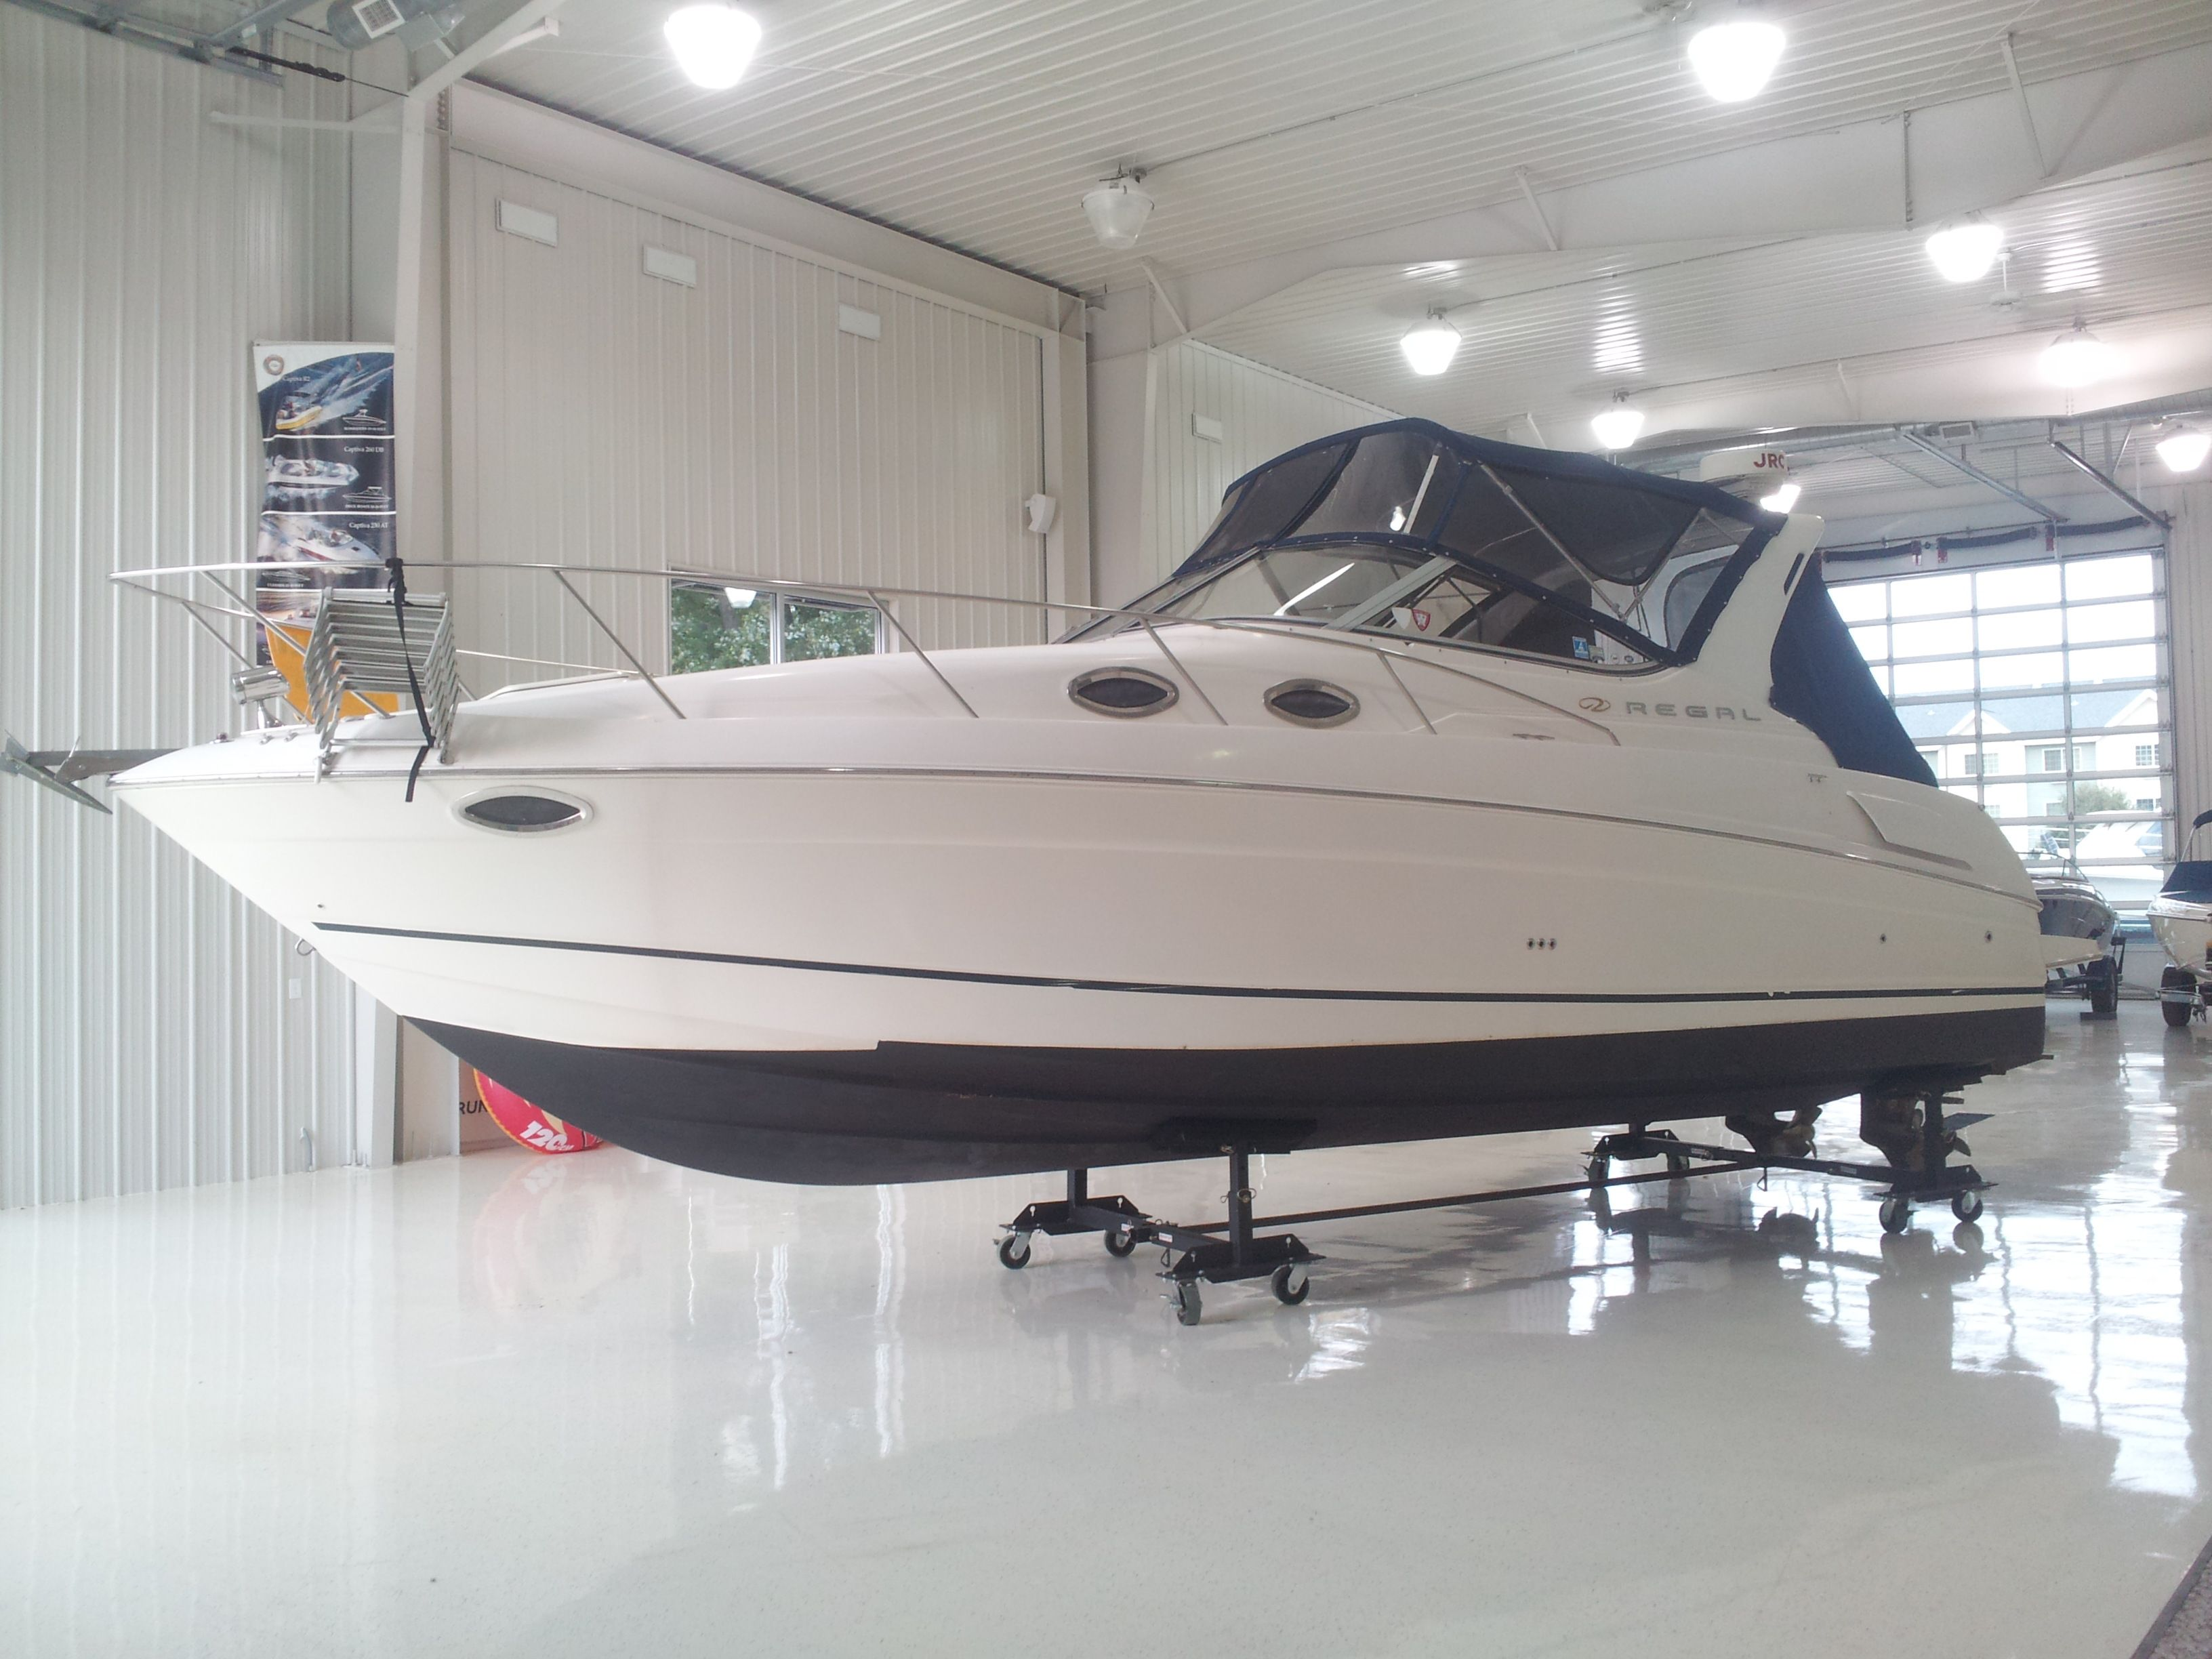 For Sale Inside Our Heated Showroom 2003 Regal 3060 Commodore This Boat Is Nice Twin 5 0l 270 Hp Volvos Air Heat Radar Vacu Flush Ca Boat Flush Relax